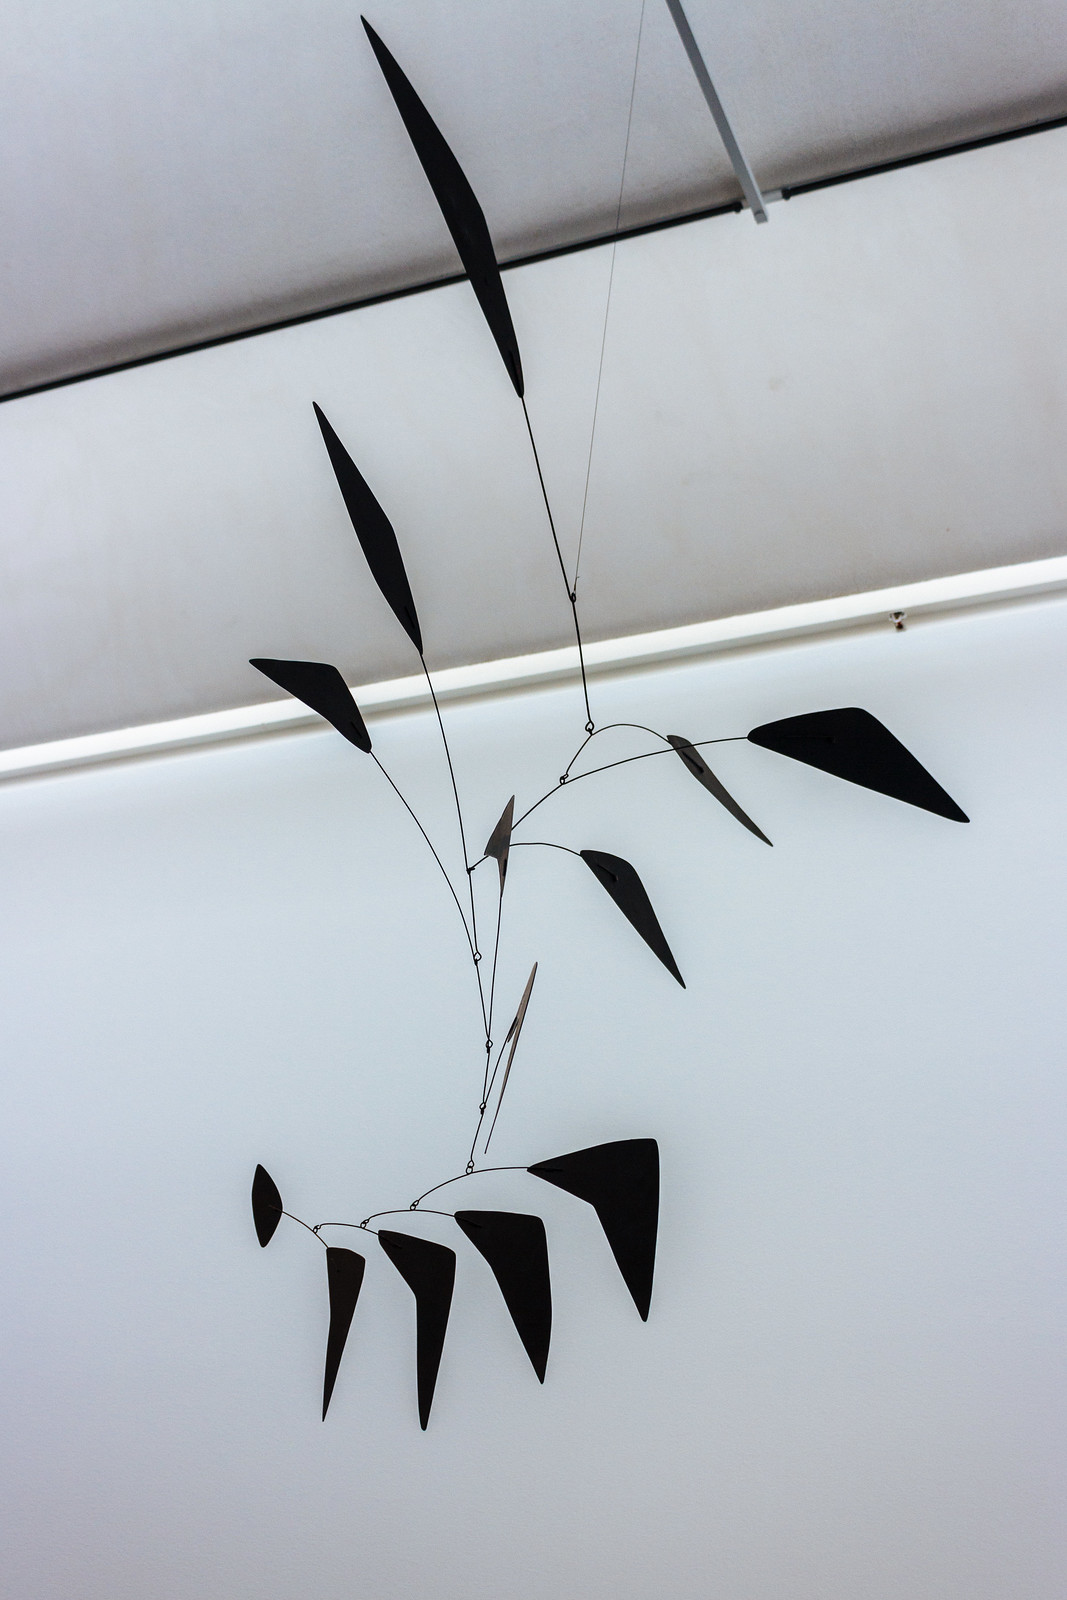 Modern art-style mobile featuring multiple black triangles, hanging from the ceiling